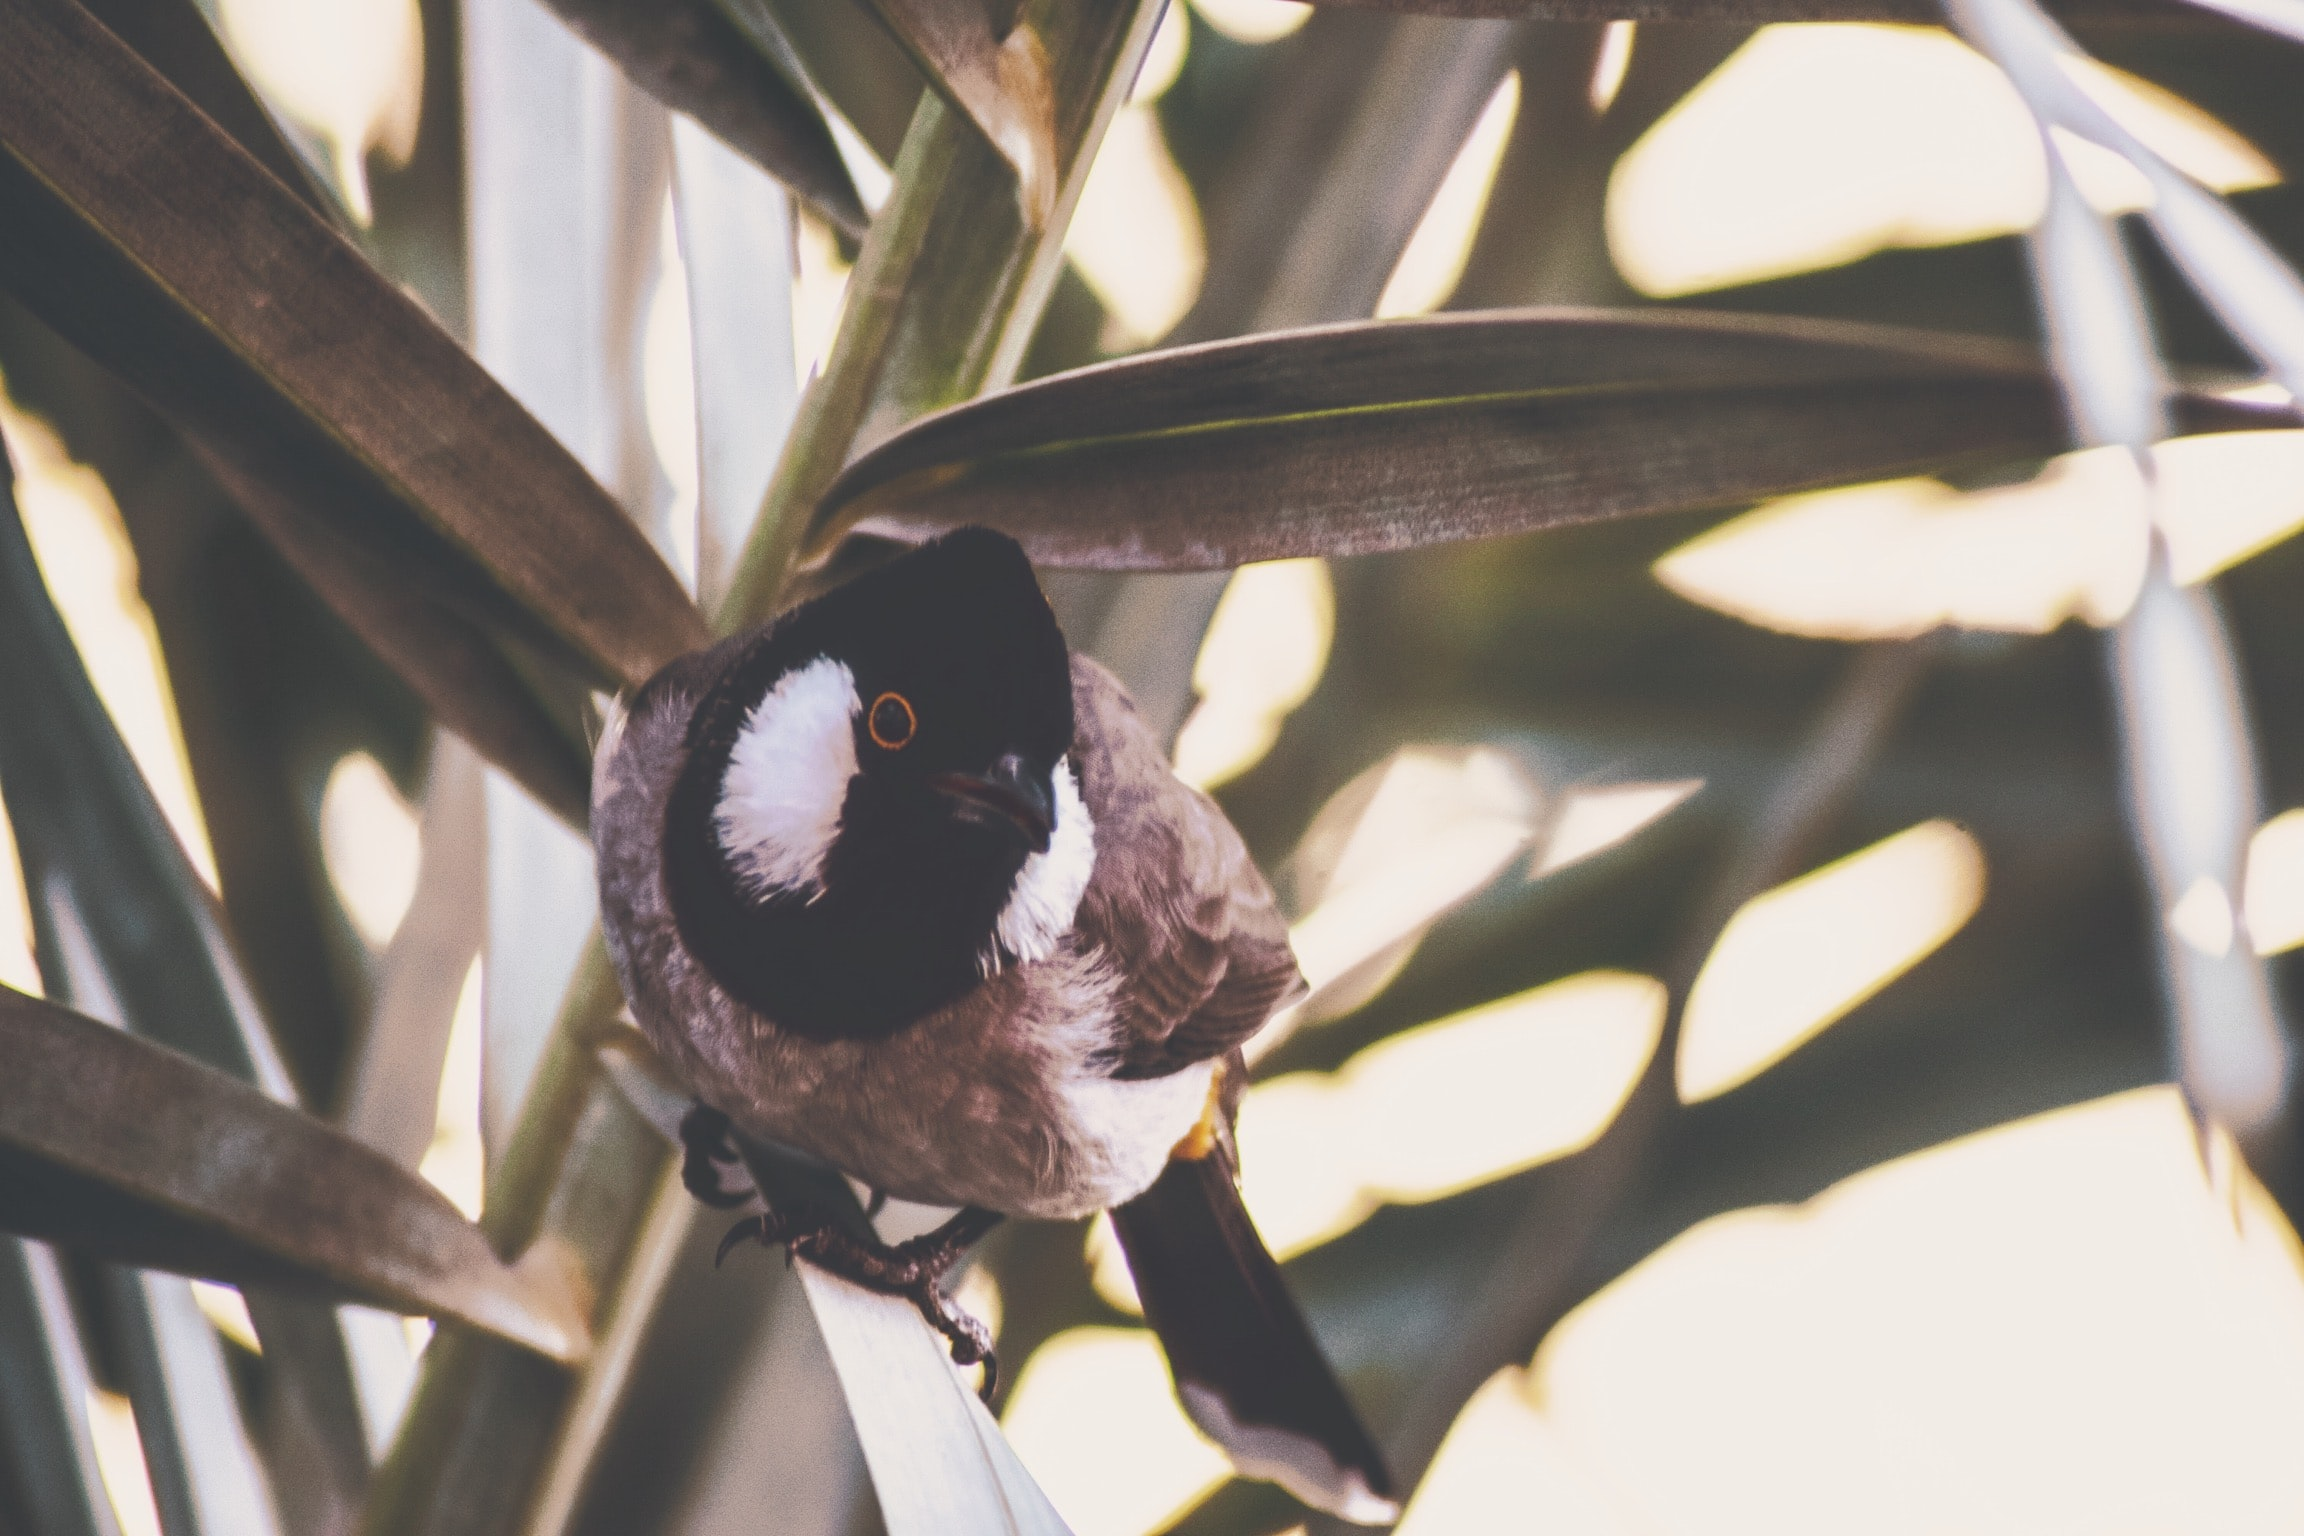 focus photo of brown and black bird